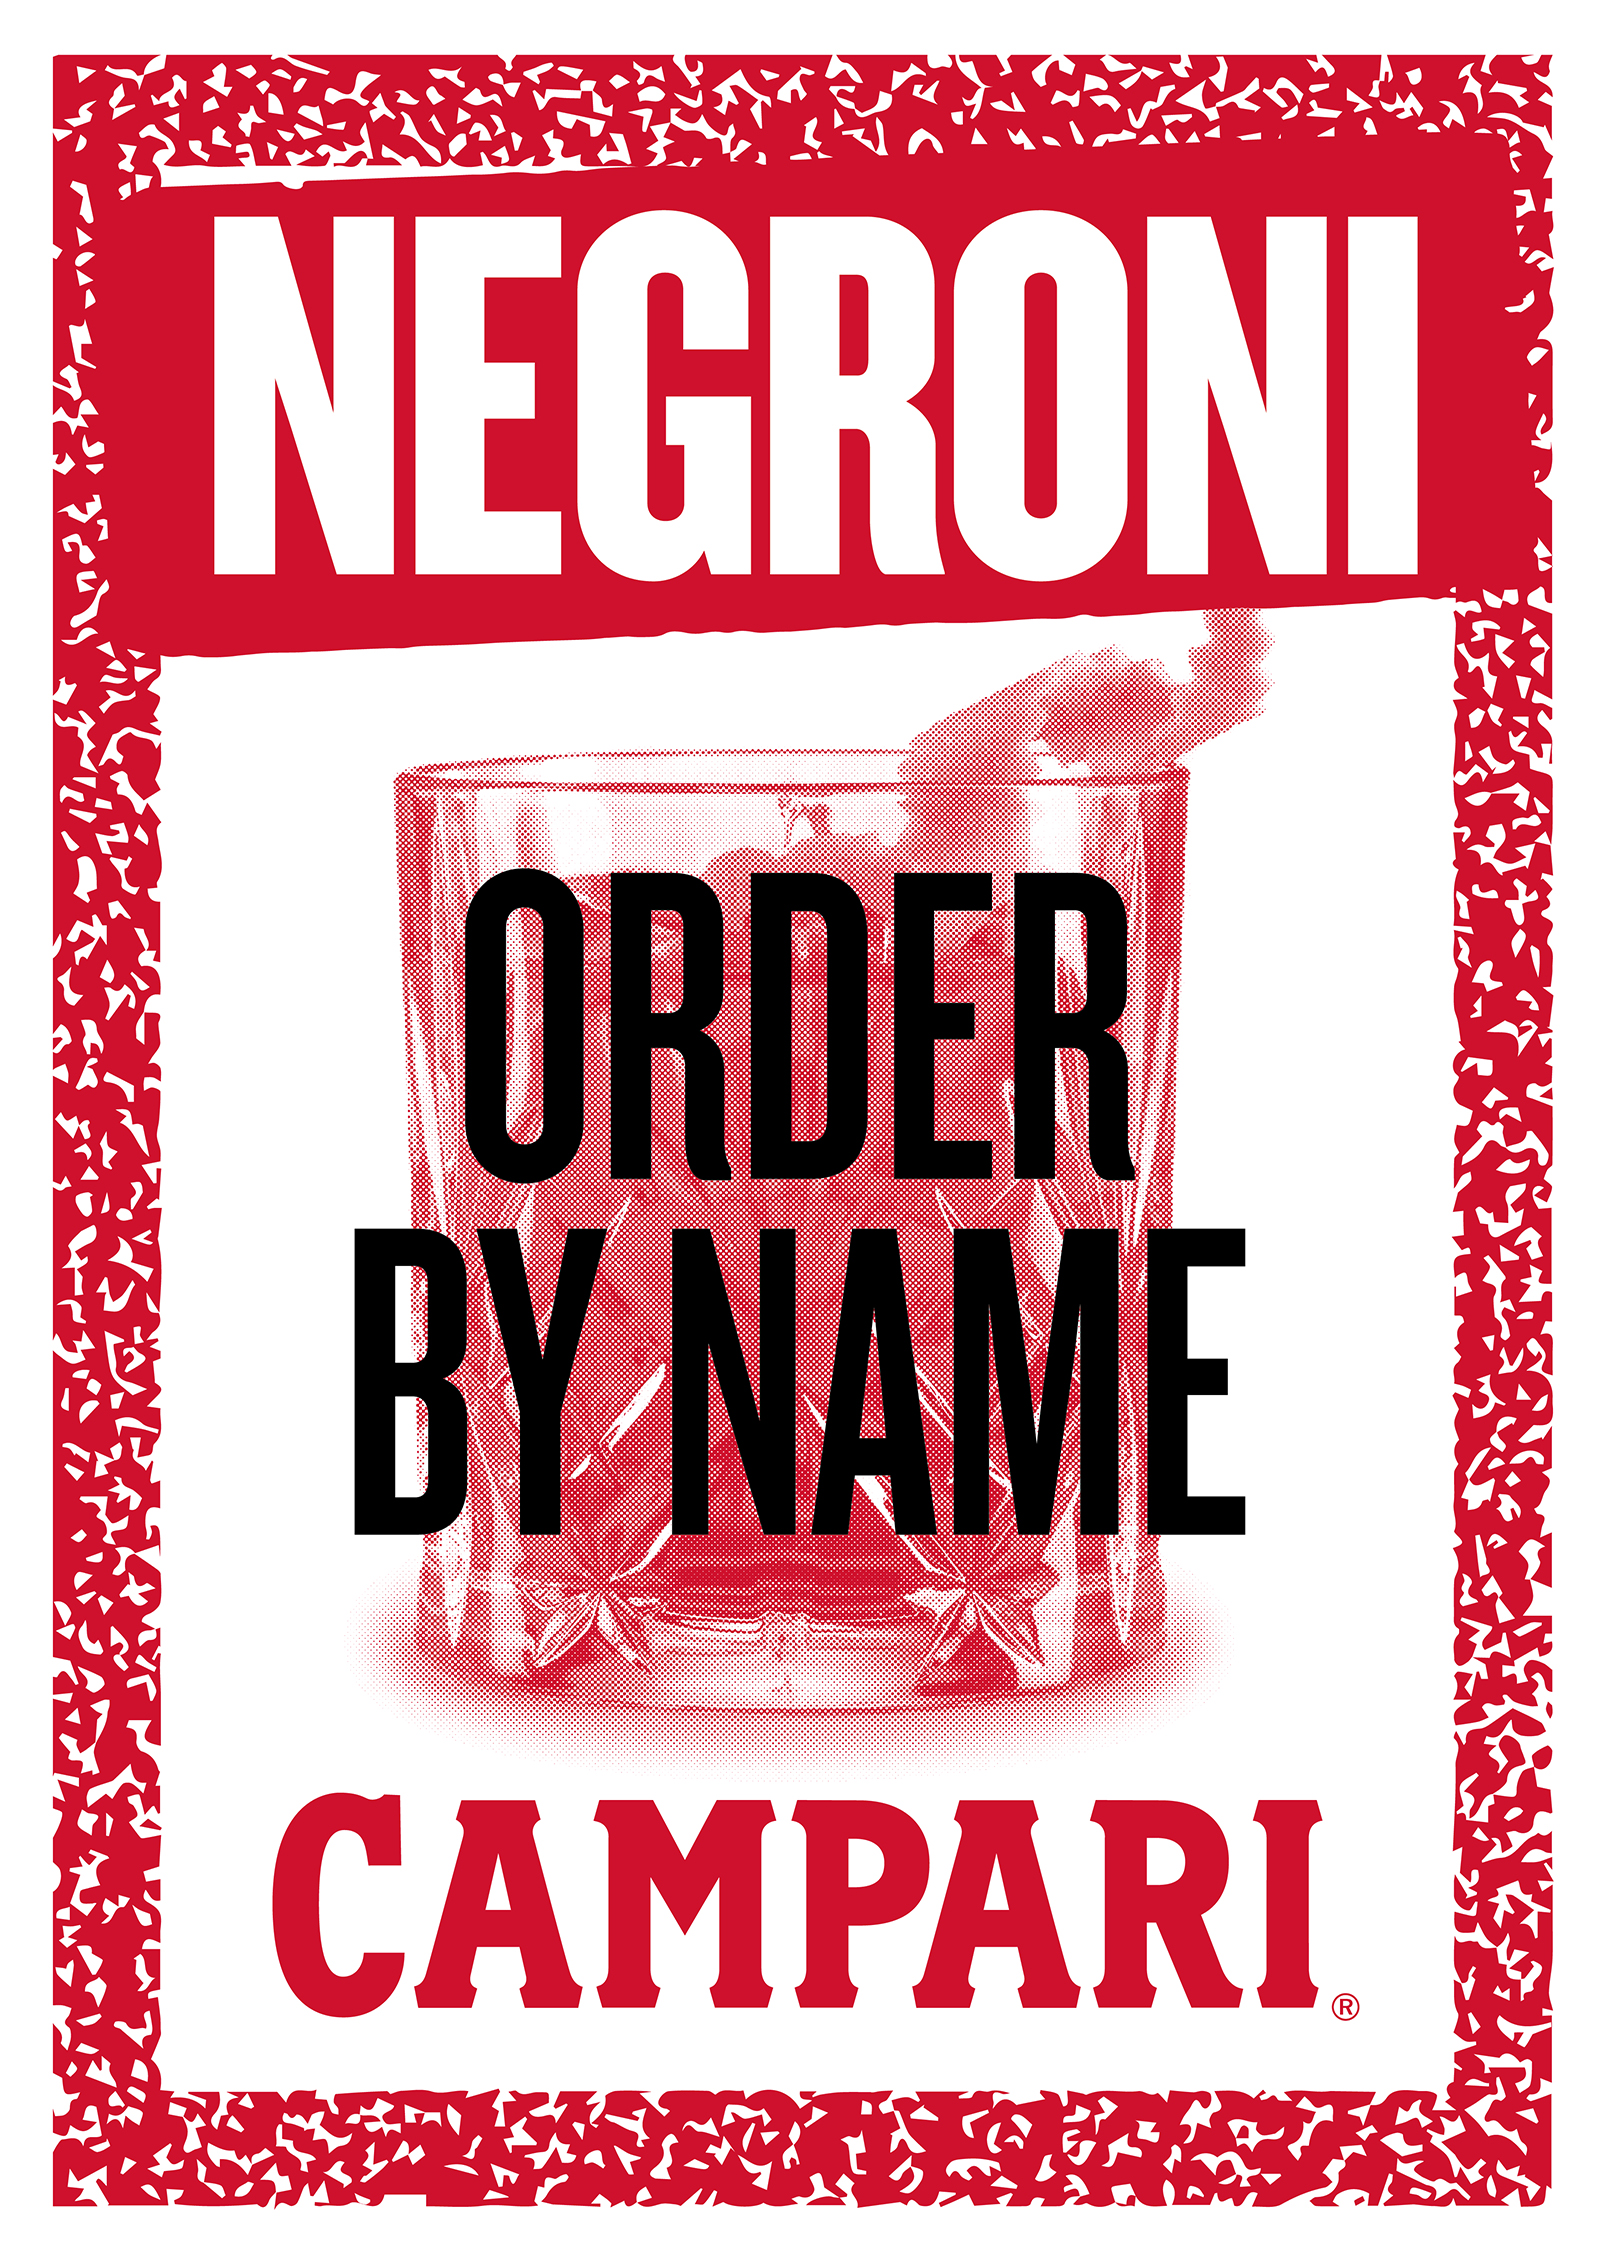 Campari   Negroni Poster   By James-Lee Duffy